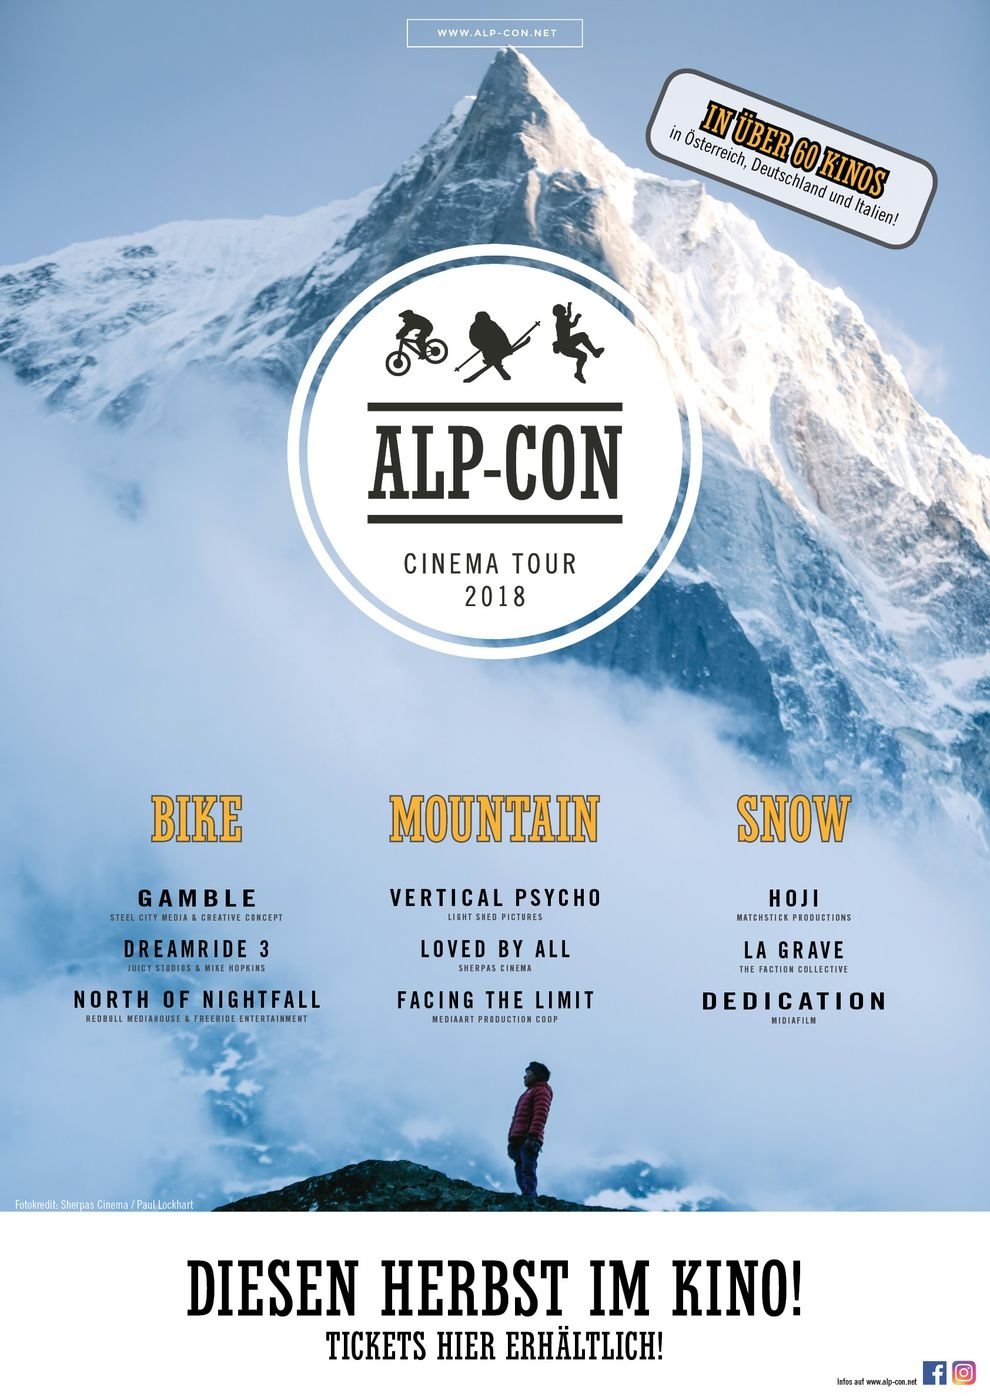 Alp-Con CinemaTour 2018: BIKE (Poster)